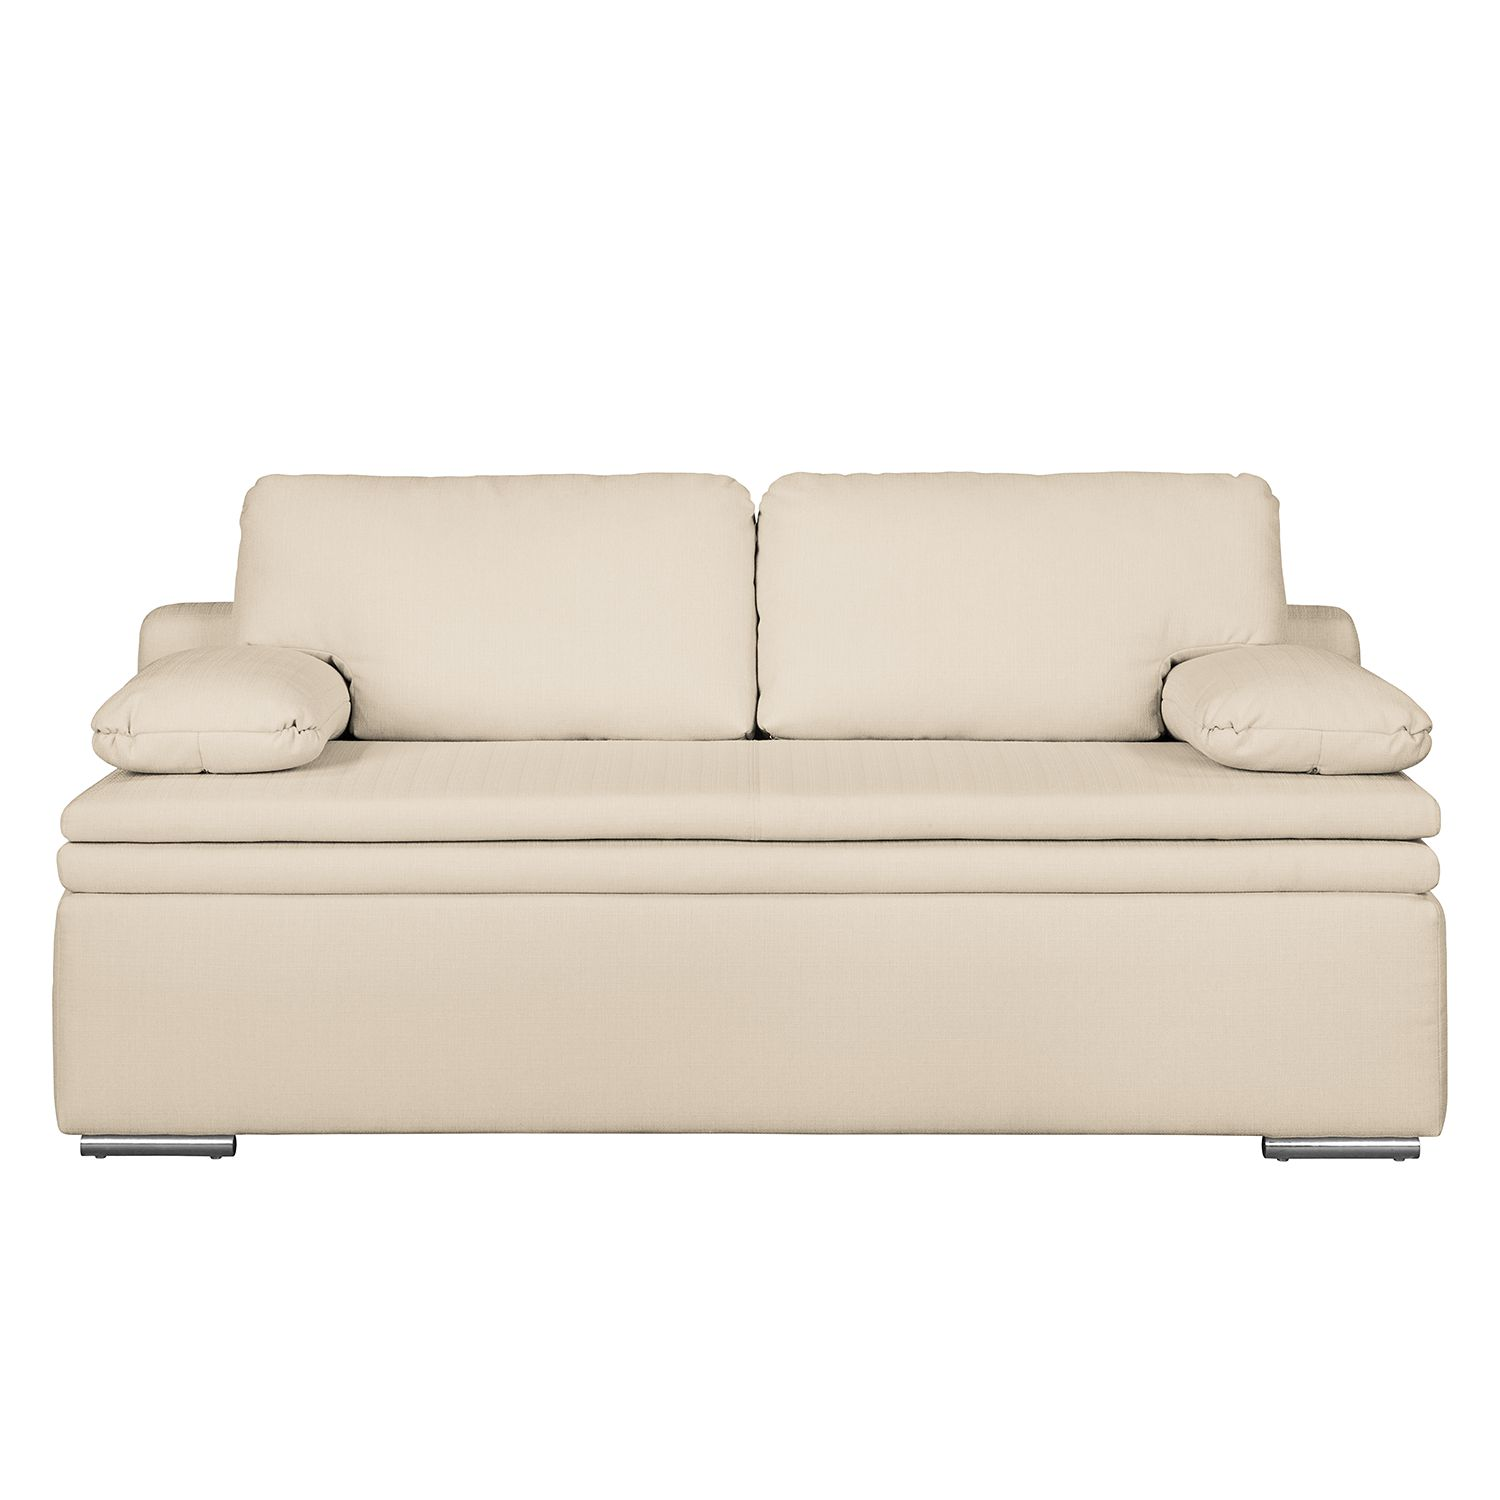 Boxspring Schlafsofa Test Boxspring Schlafsofa. Perfect Boxspring Schlafsofa With